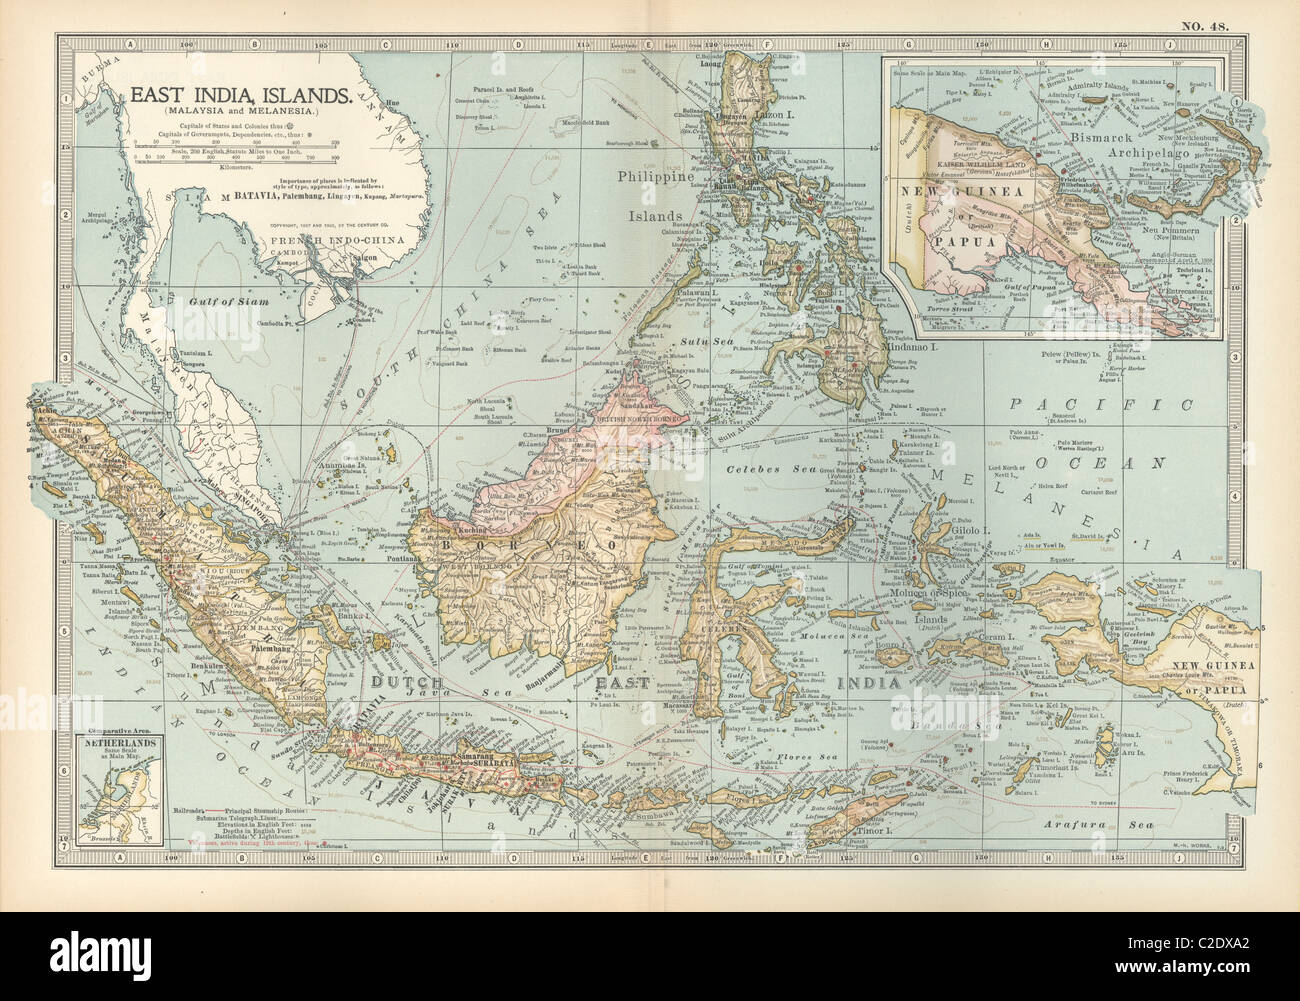 Map of East India Islands with New Guinea - Stock Image